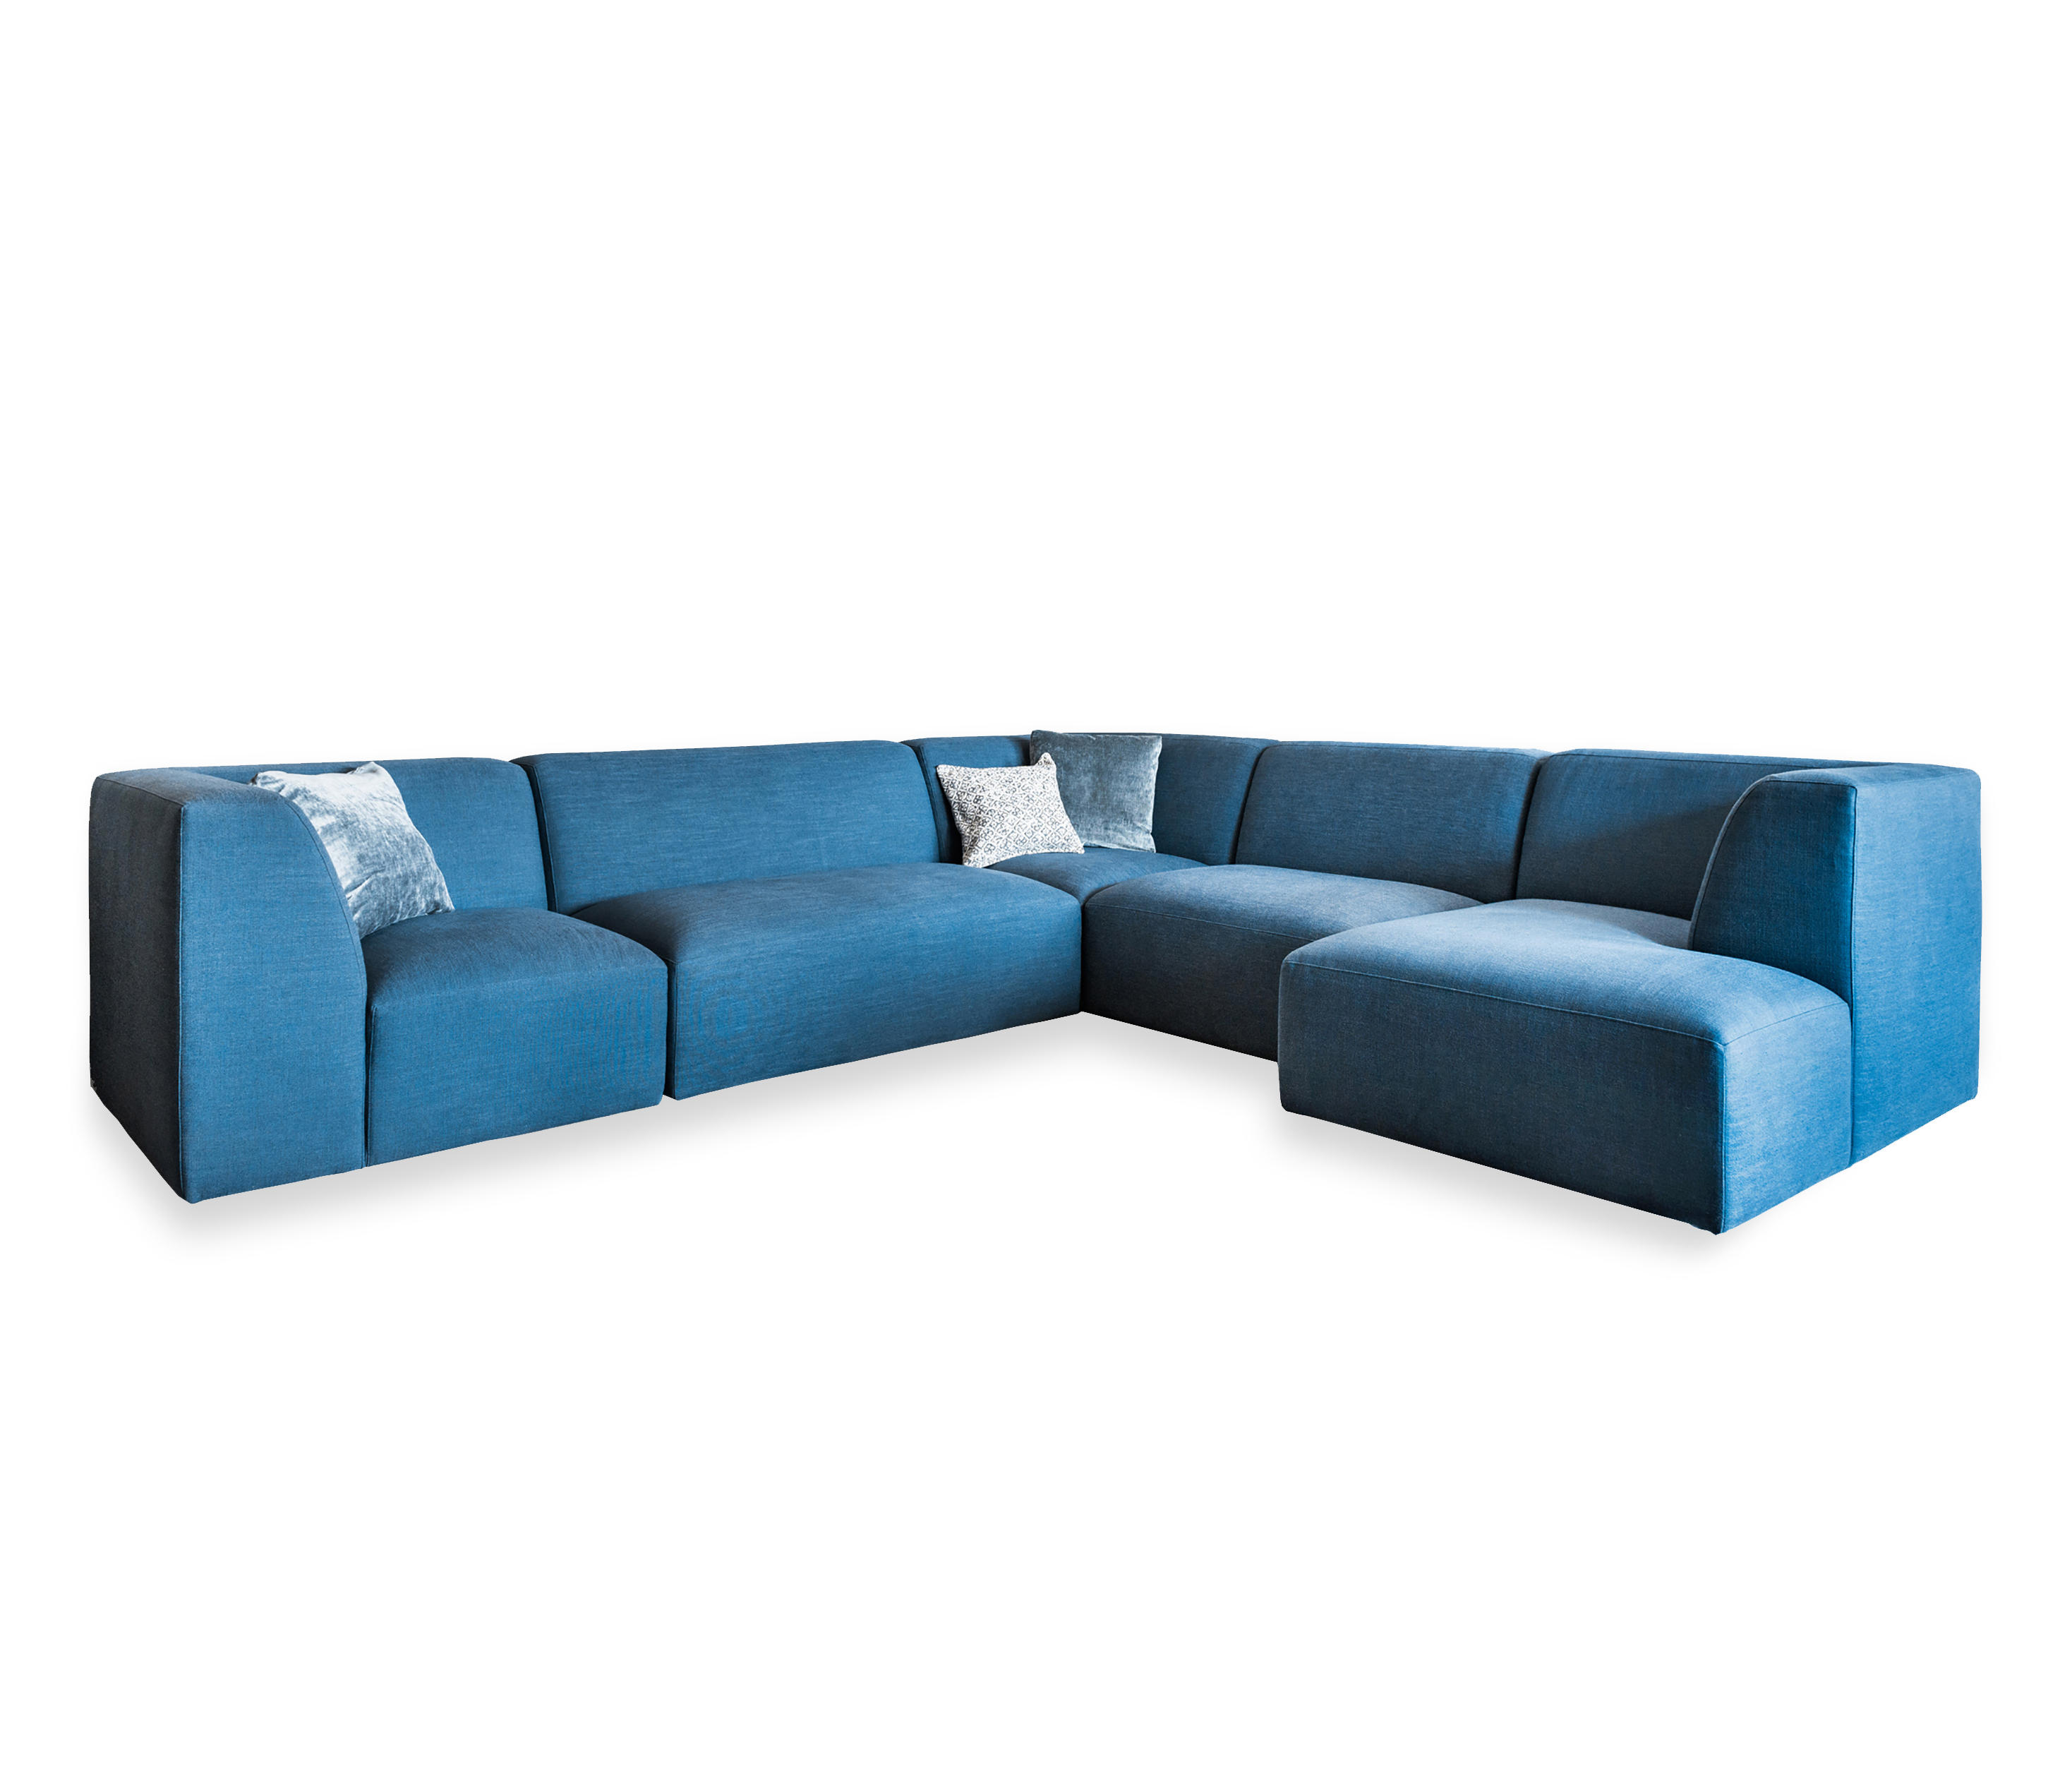 concept 1010 sofa lounge sofas from neue wiener werkst tte architonic. Black Bedroom Furniture Sets. Home Design Ideas